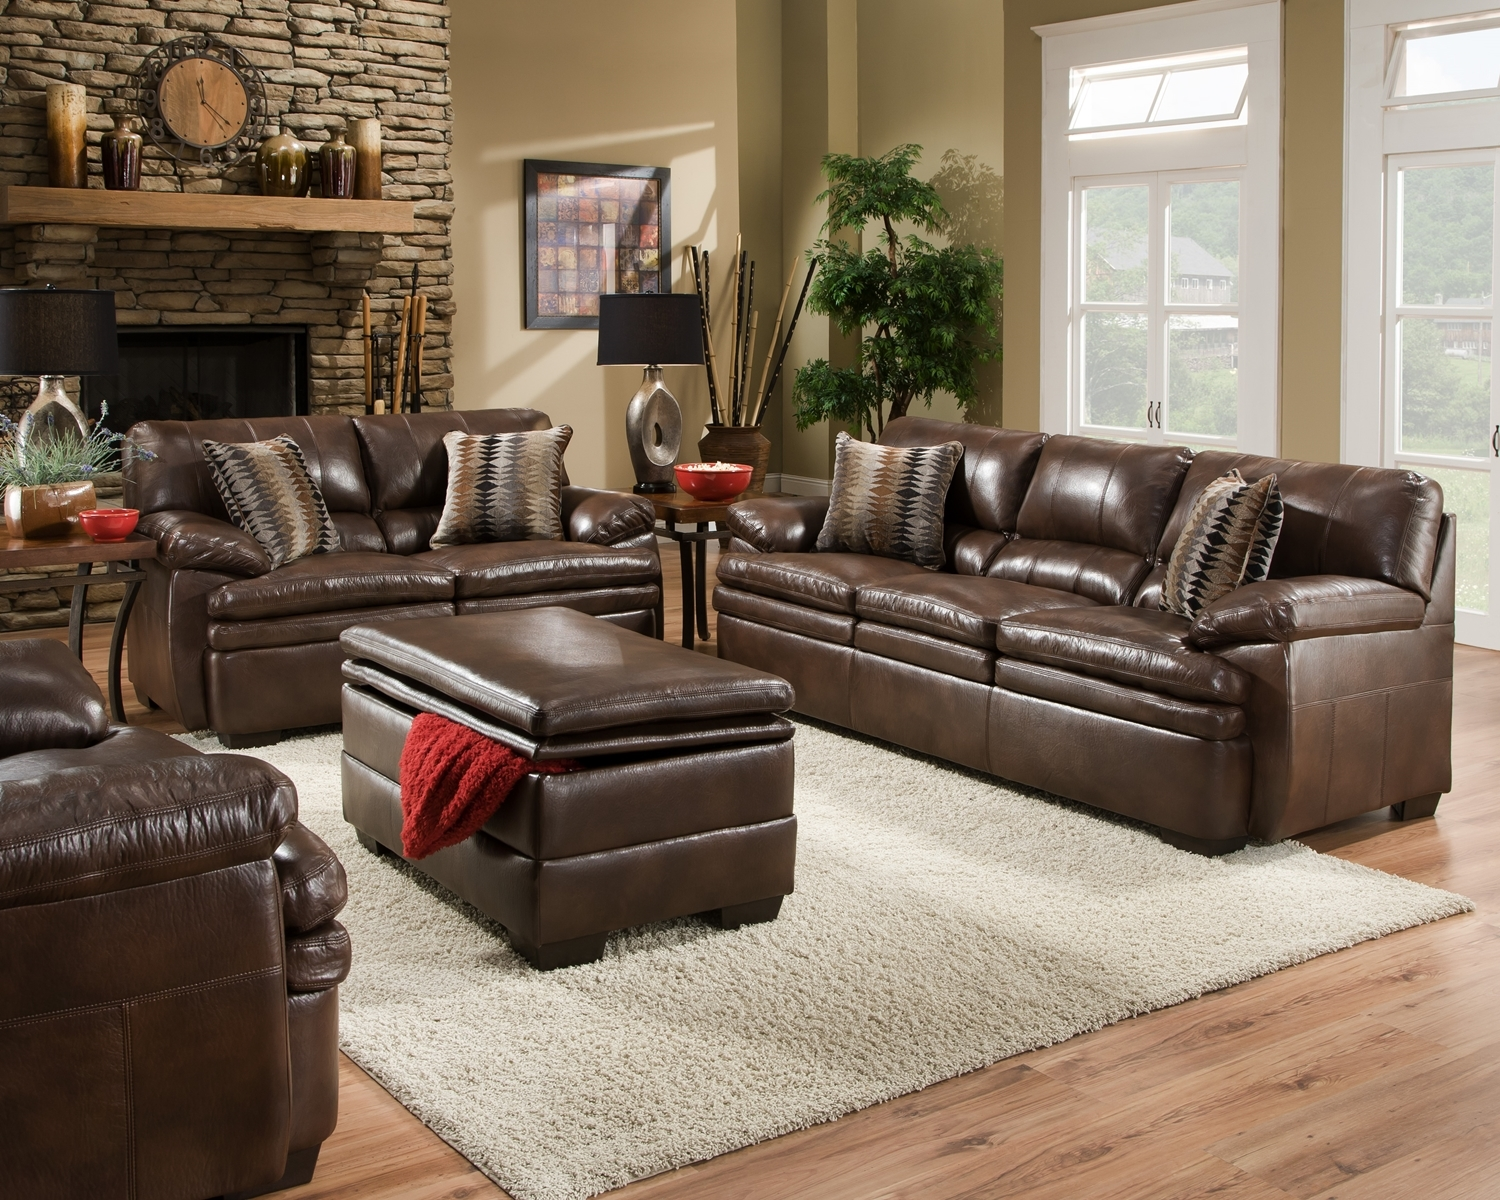 Brown Bonded Leather Sofa Set Casual Living Room Furniture W Accent Pillows